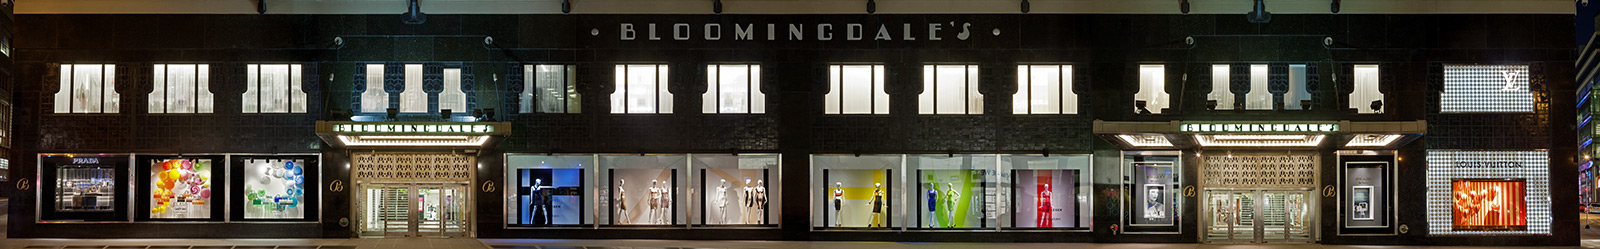 Bloomingdale´s, Lexington Avenue by James & Karla Murray